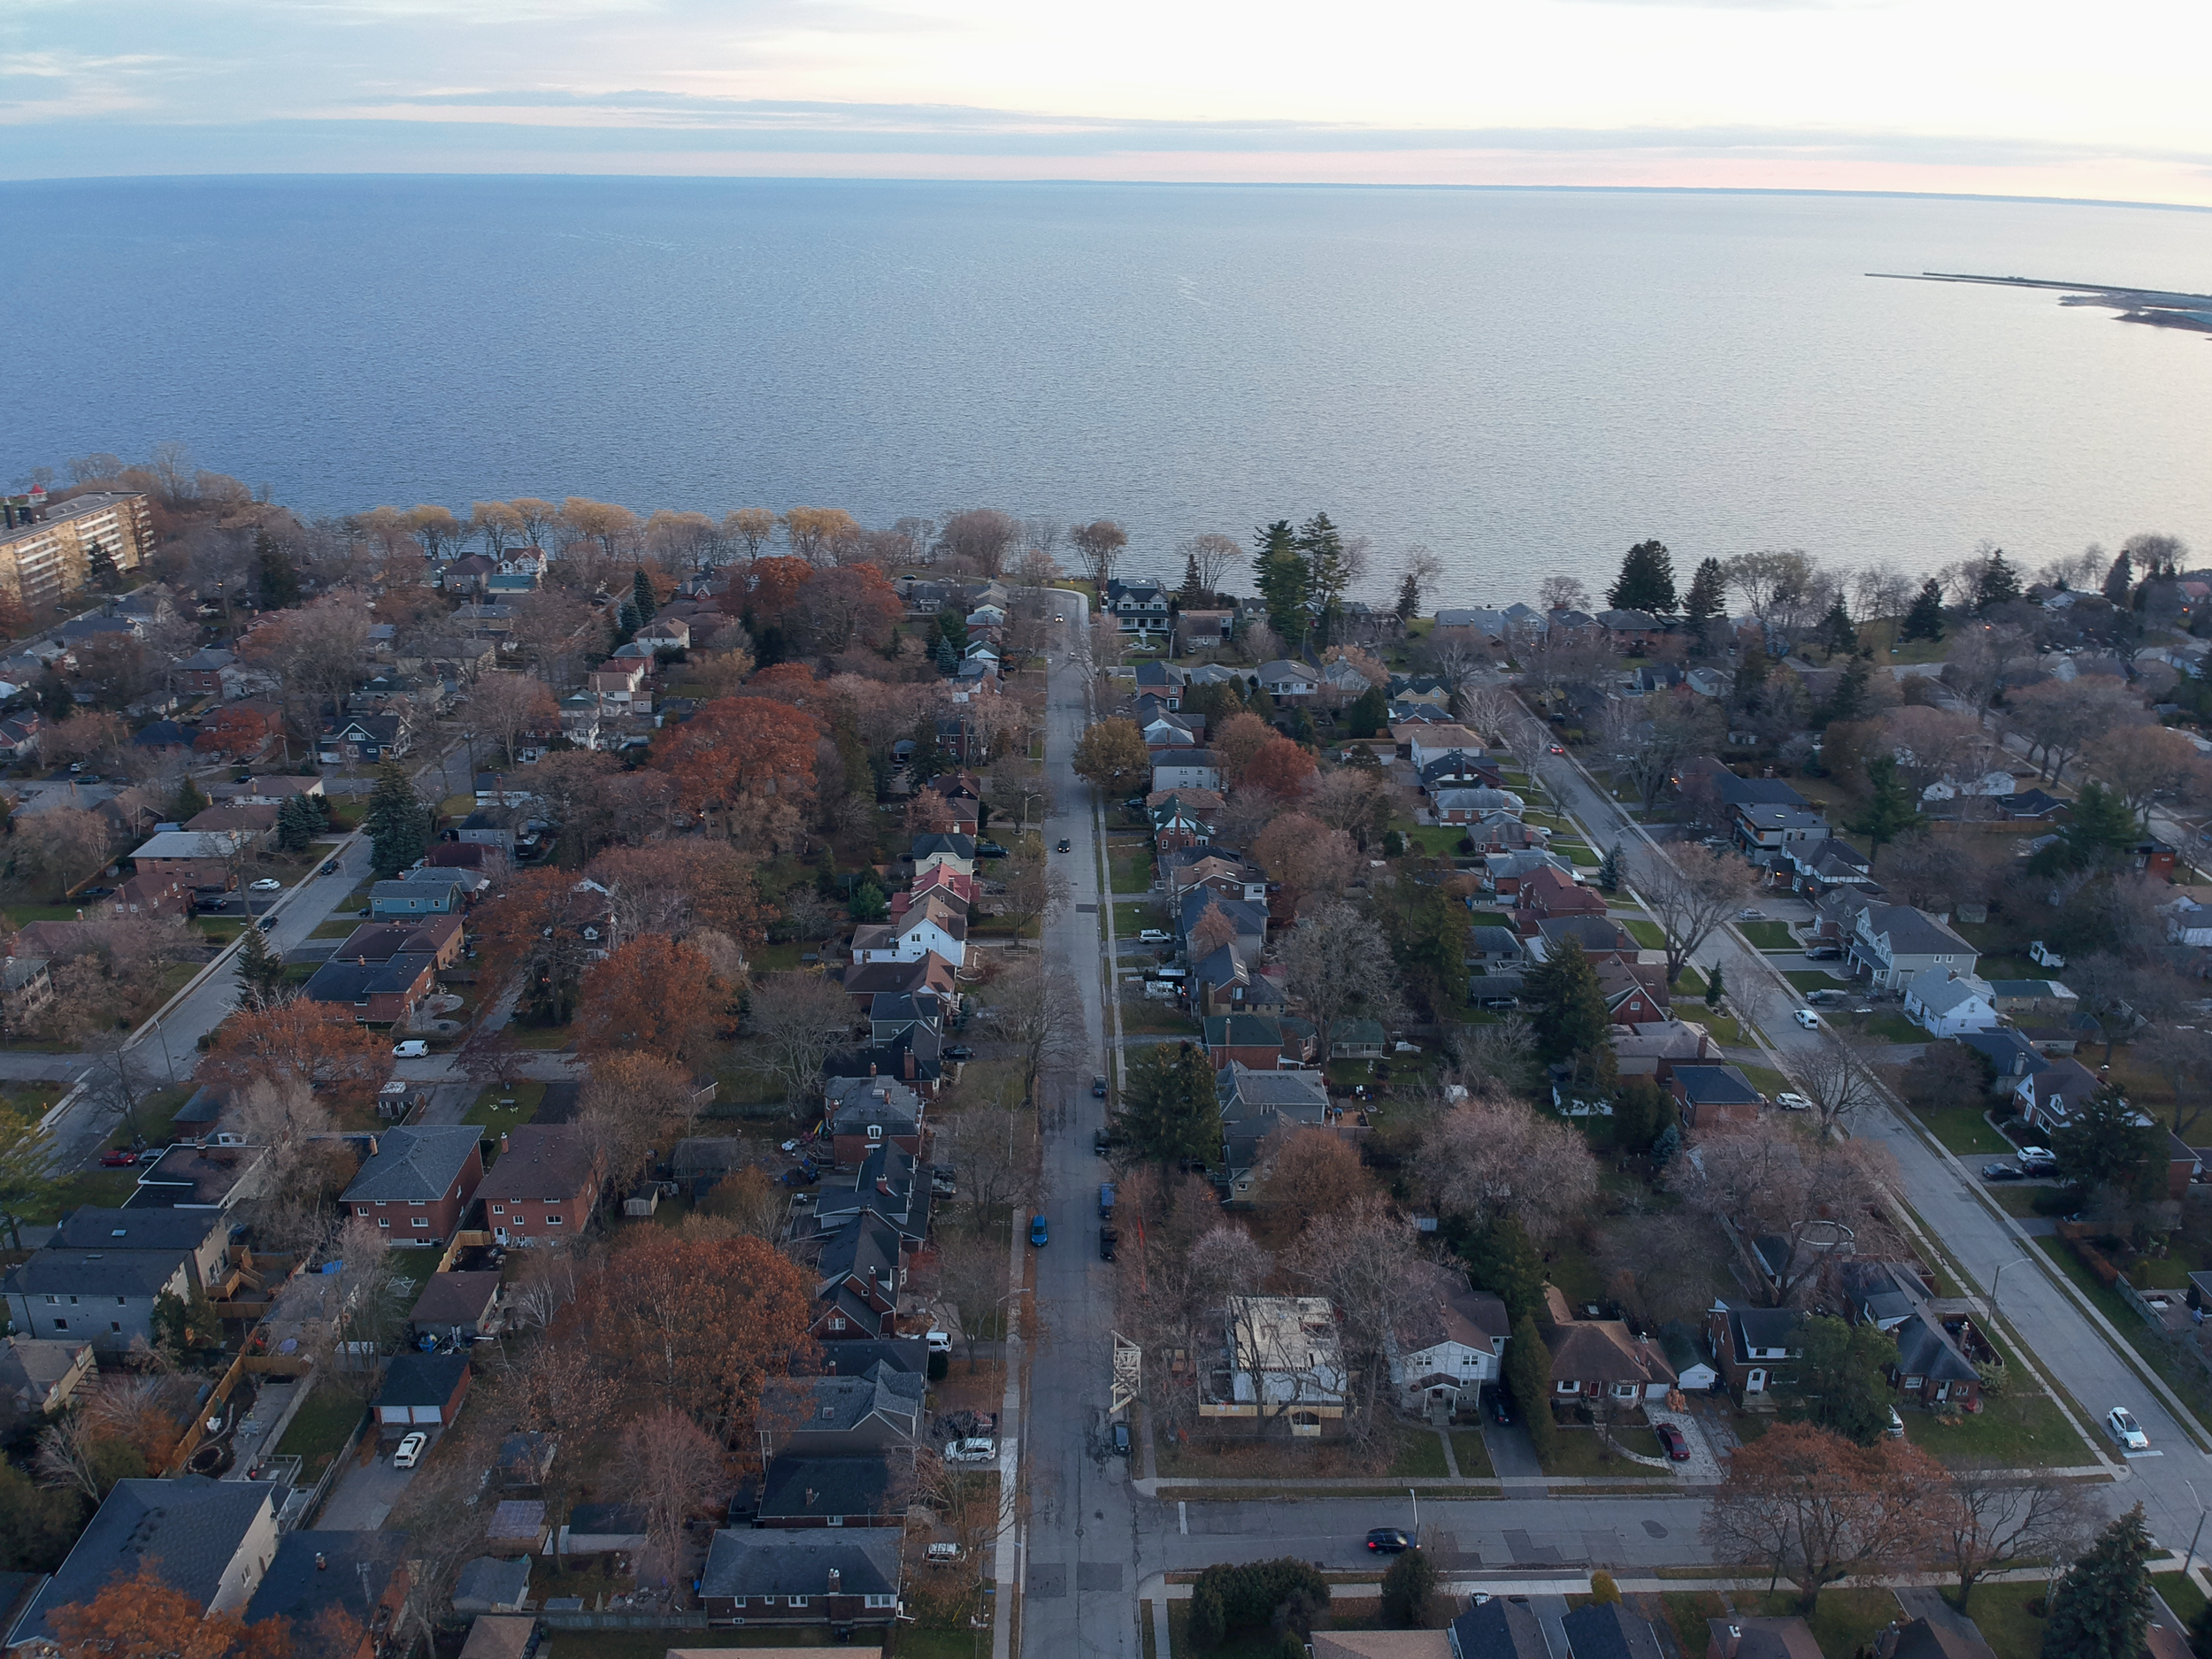 Empty Development Lot, situated just 300m away from Lake Ontario.